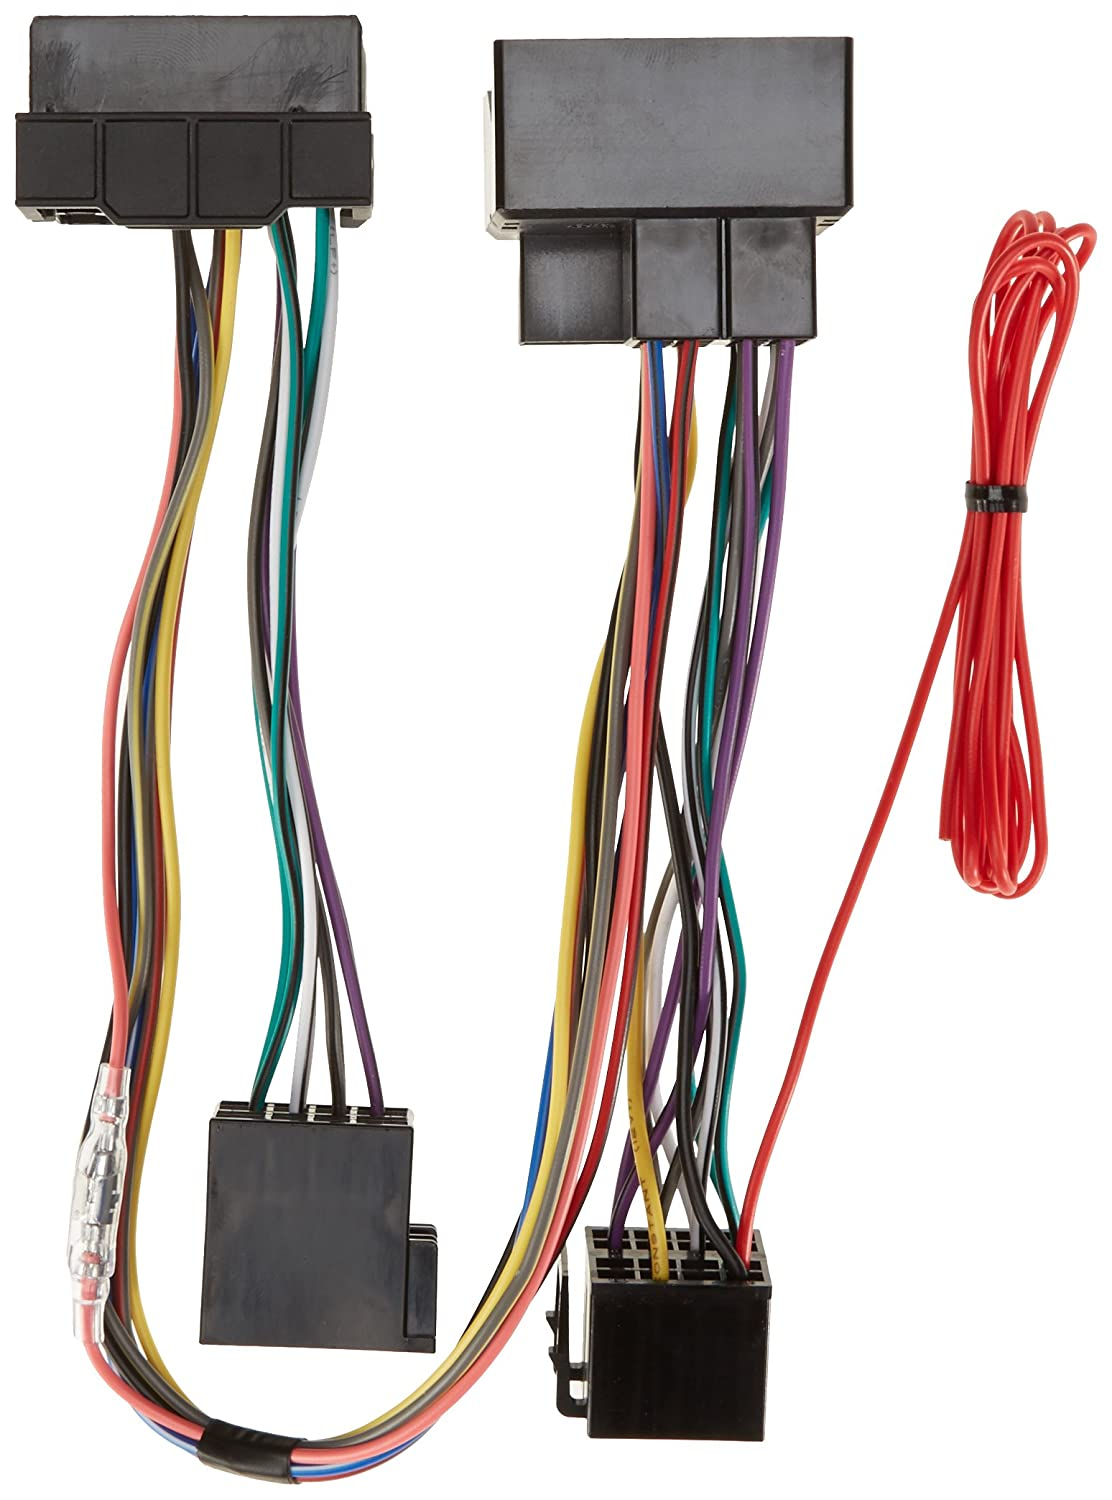 81Fg8hC7OyL._SL1500_ 81fg8hc7oyl _sl1500_ jpg sot-040 wiring diagram at webbmarketing.co